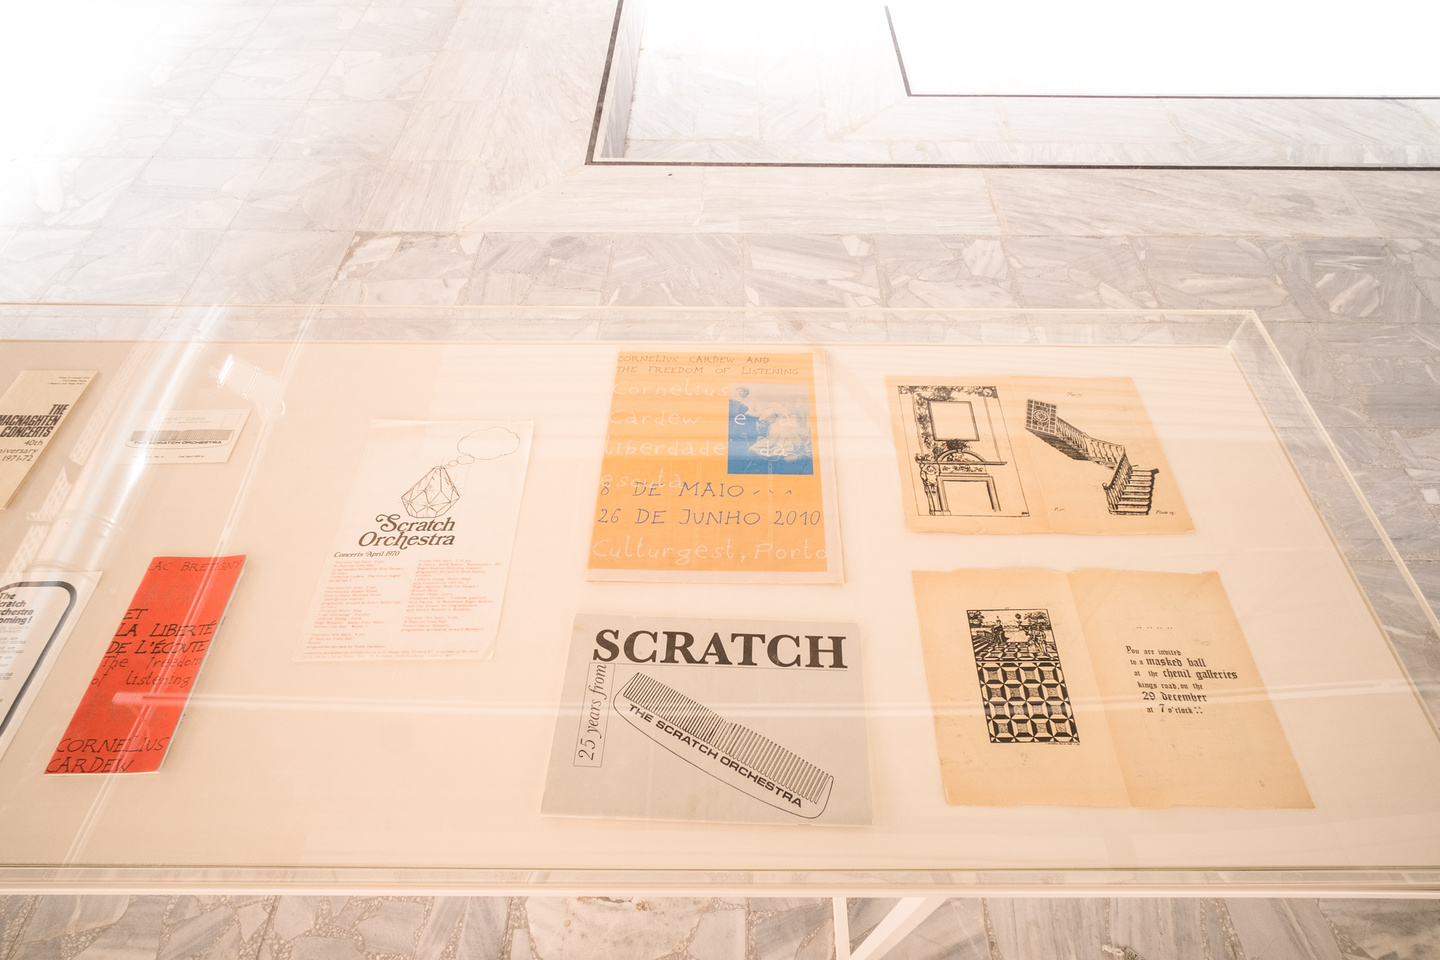 Scratch Orchestra, archival material, installation view, Mathias Voelzke